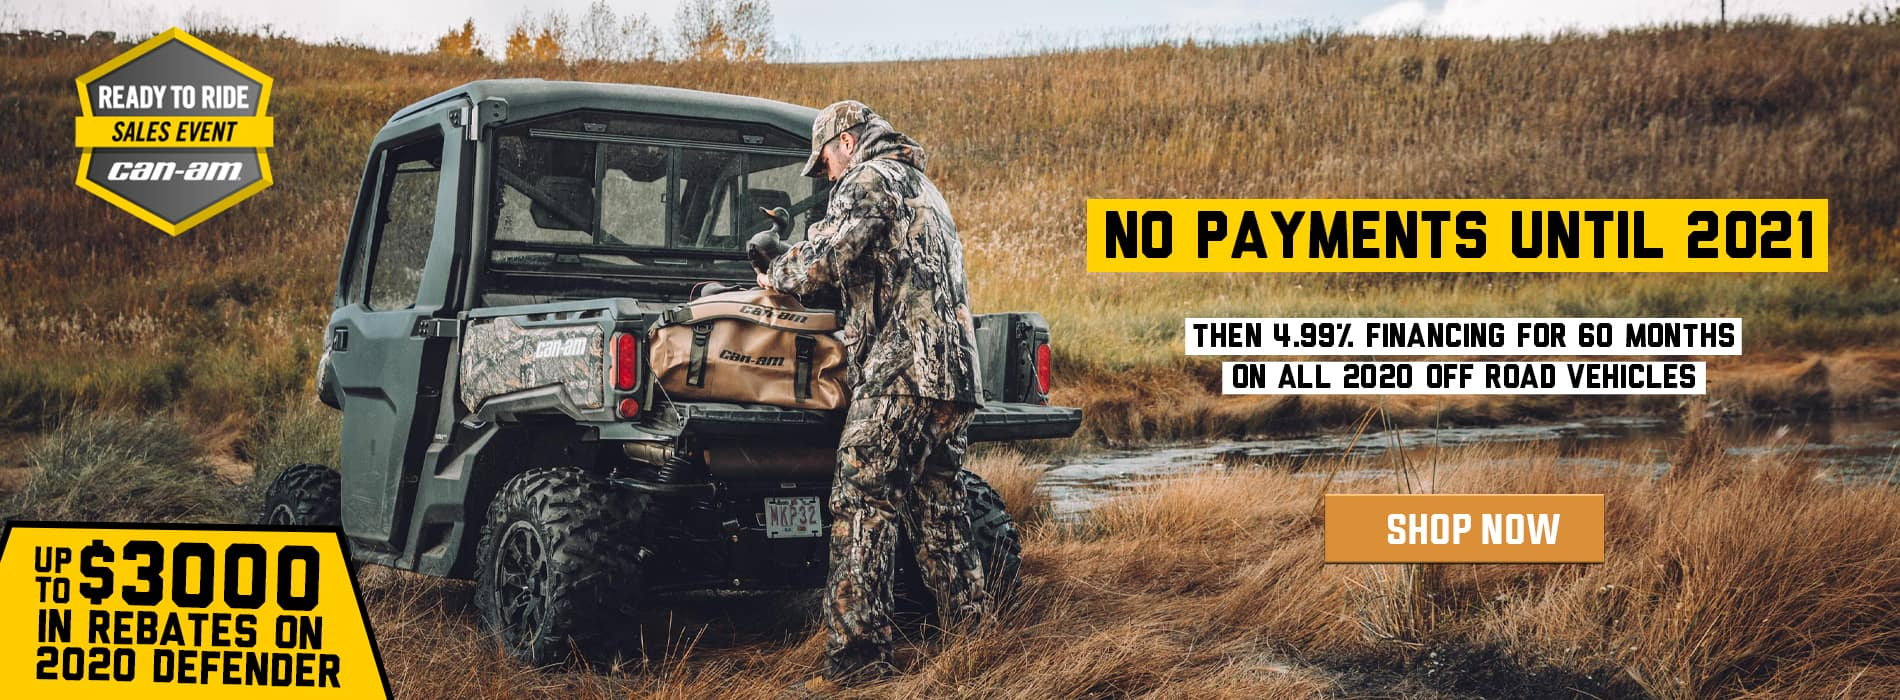 canam no payments r2r 10-2020